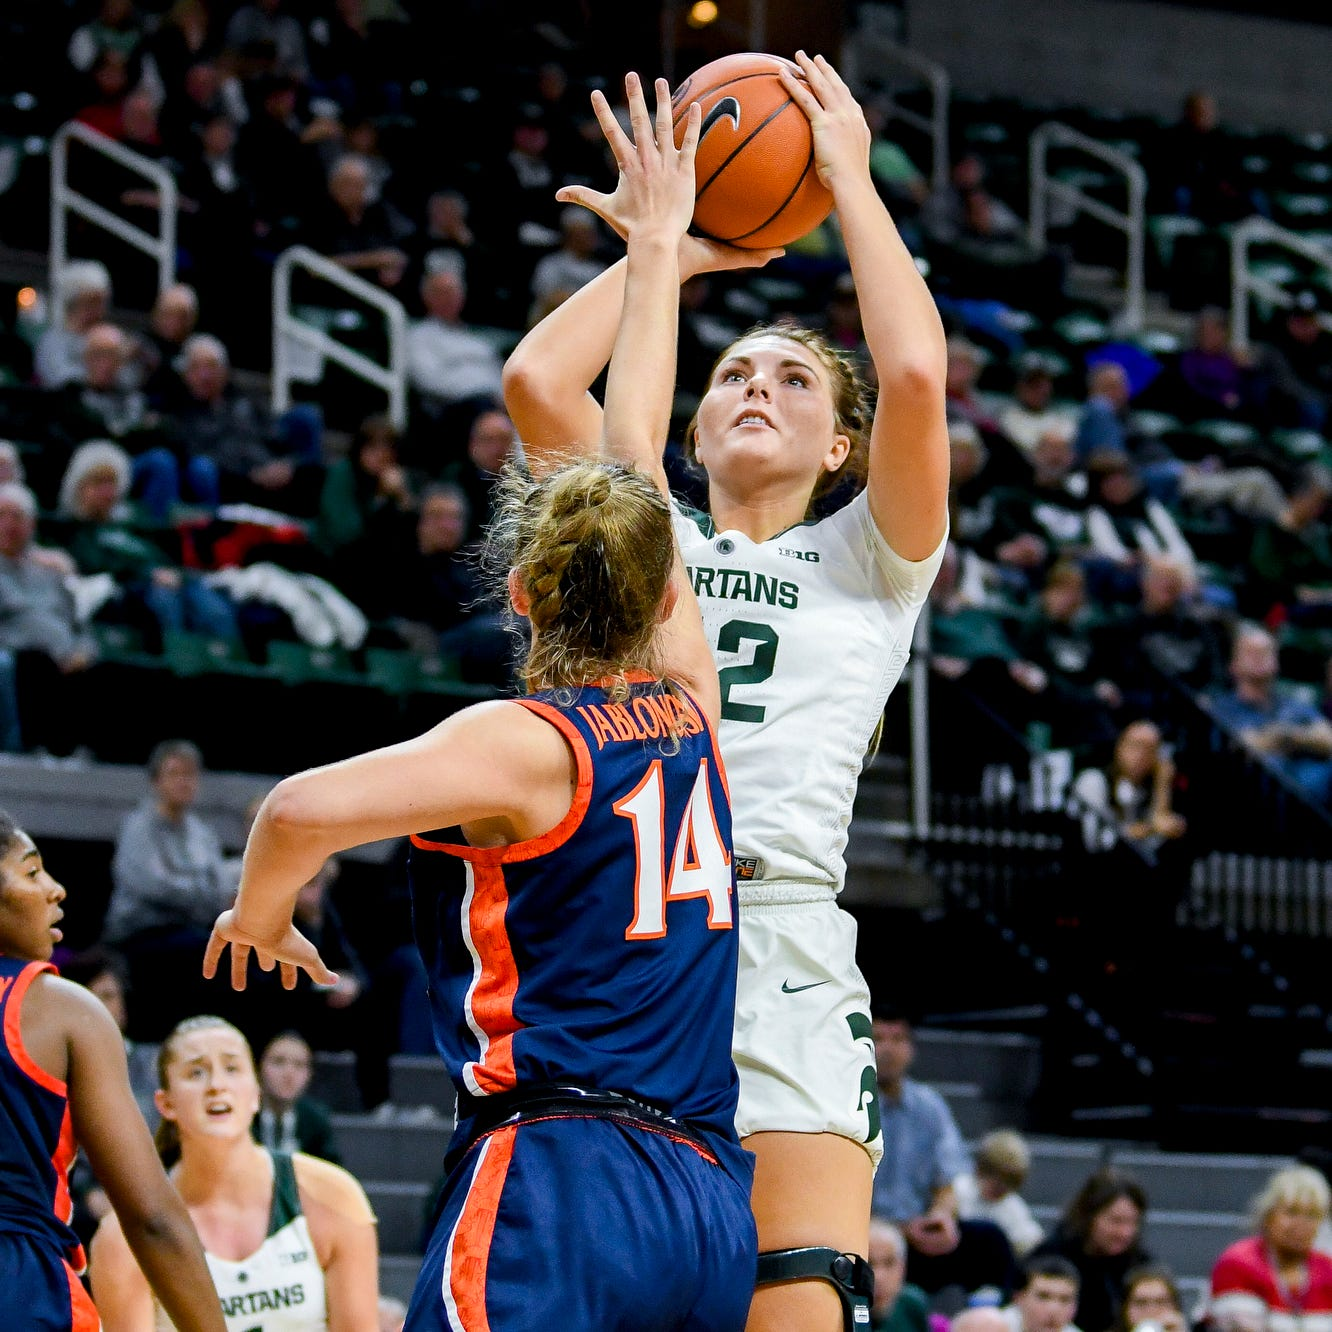 Surgeries behind her, Ithaca's Kayla Belles ready to contribute for Michigan State women